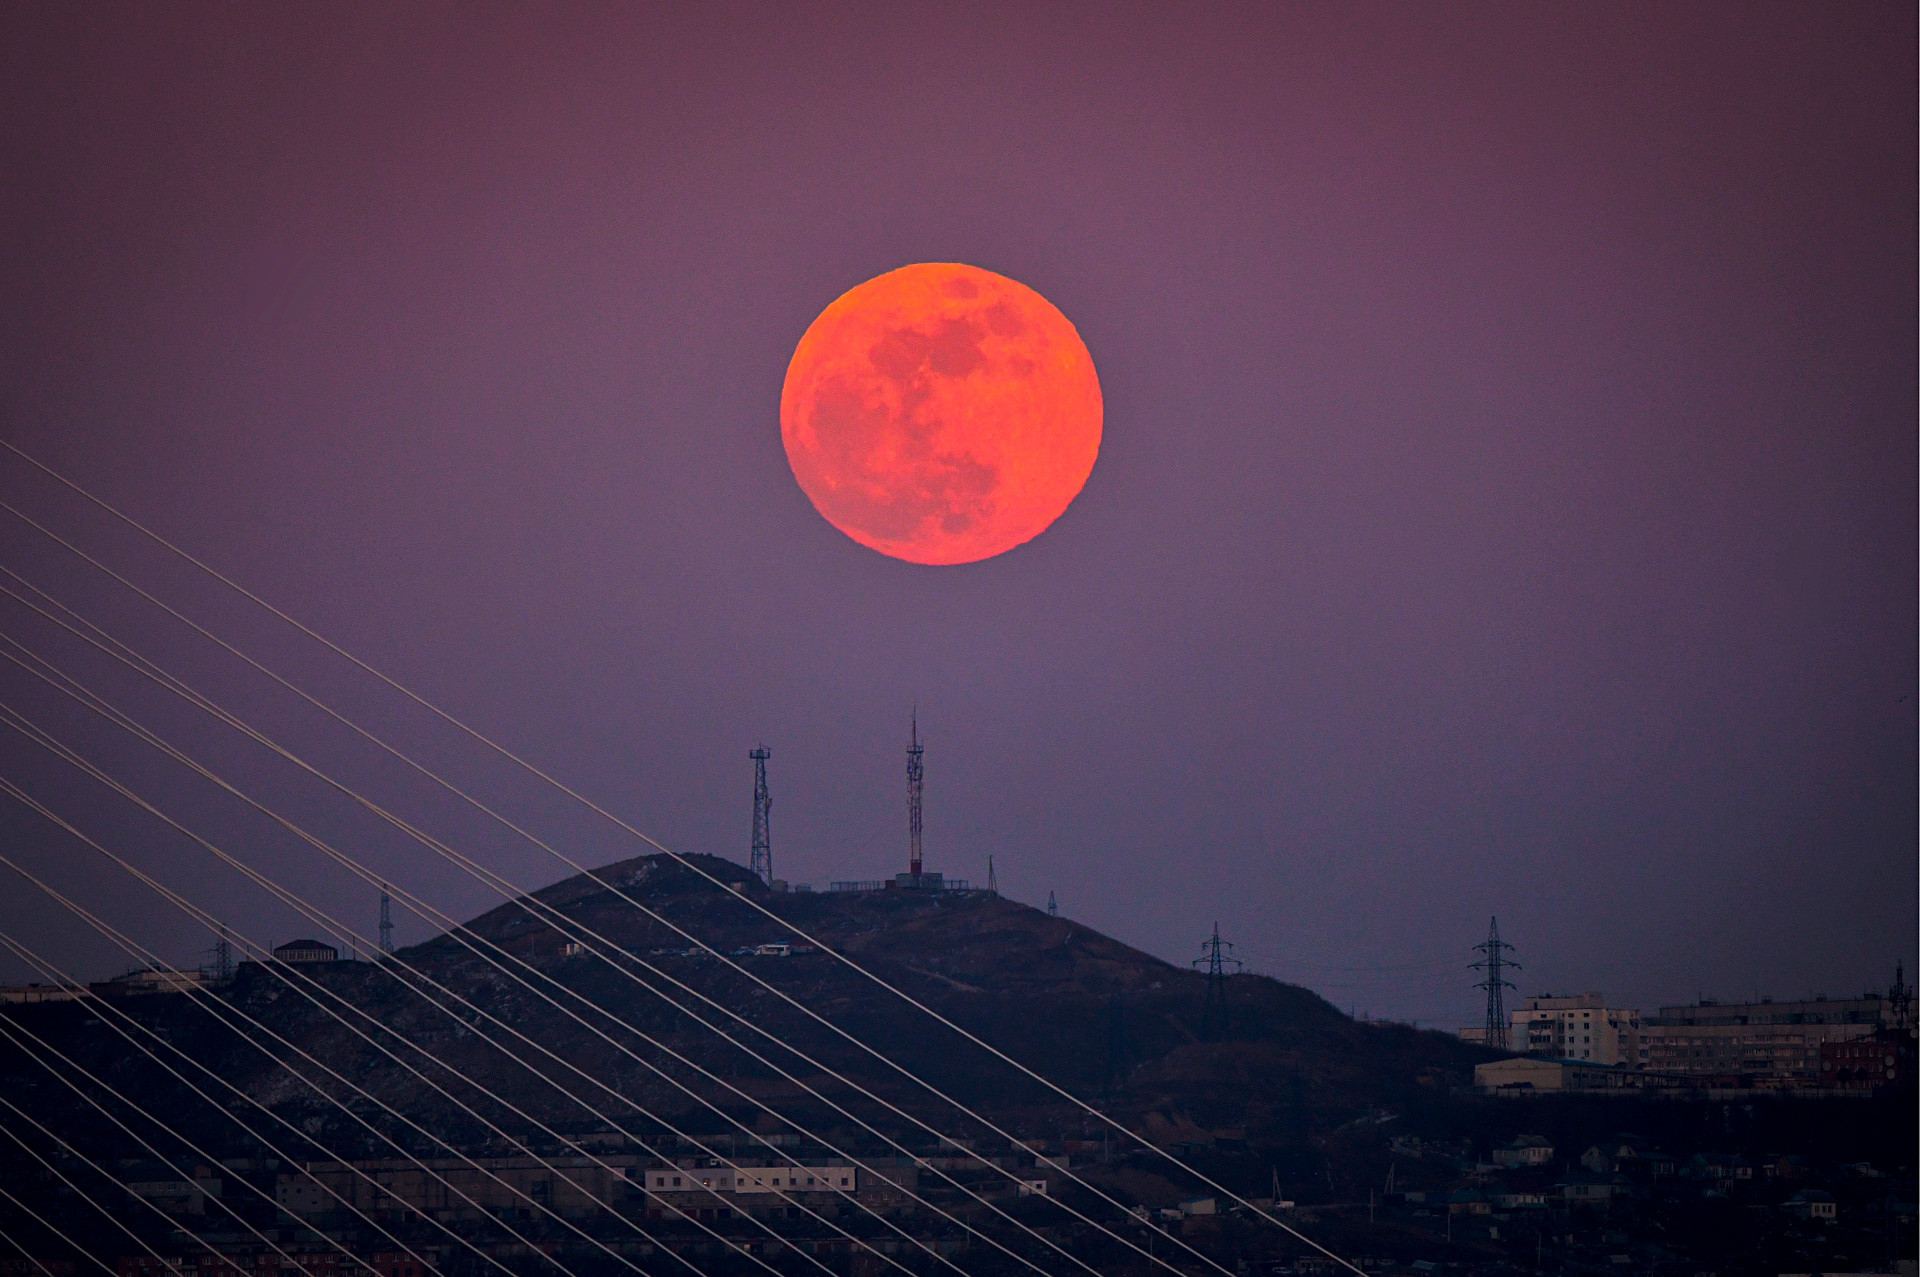 The red full moon rises over hills in the city of Vladivostok in Russia's Far East as a Blue Moon, supermoon and total lunar eclipse occur at the same time.